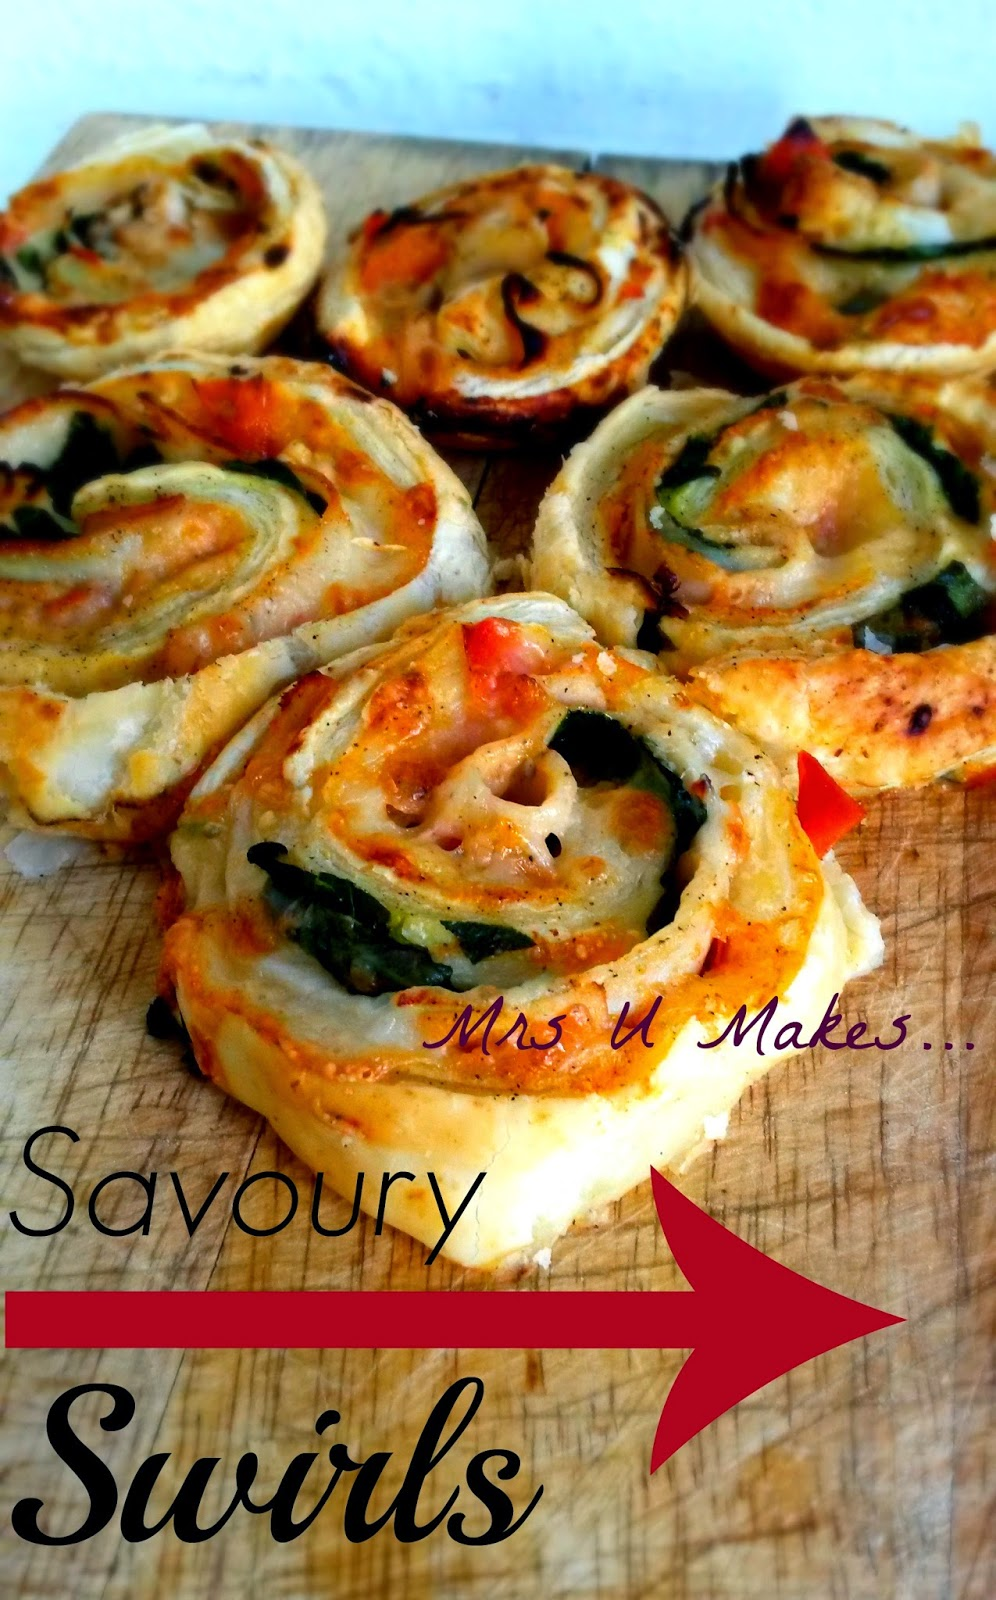 Mrs U Makes...Savoury Swirls